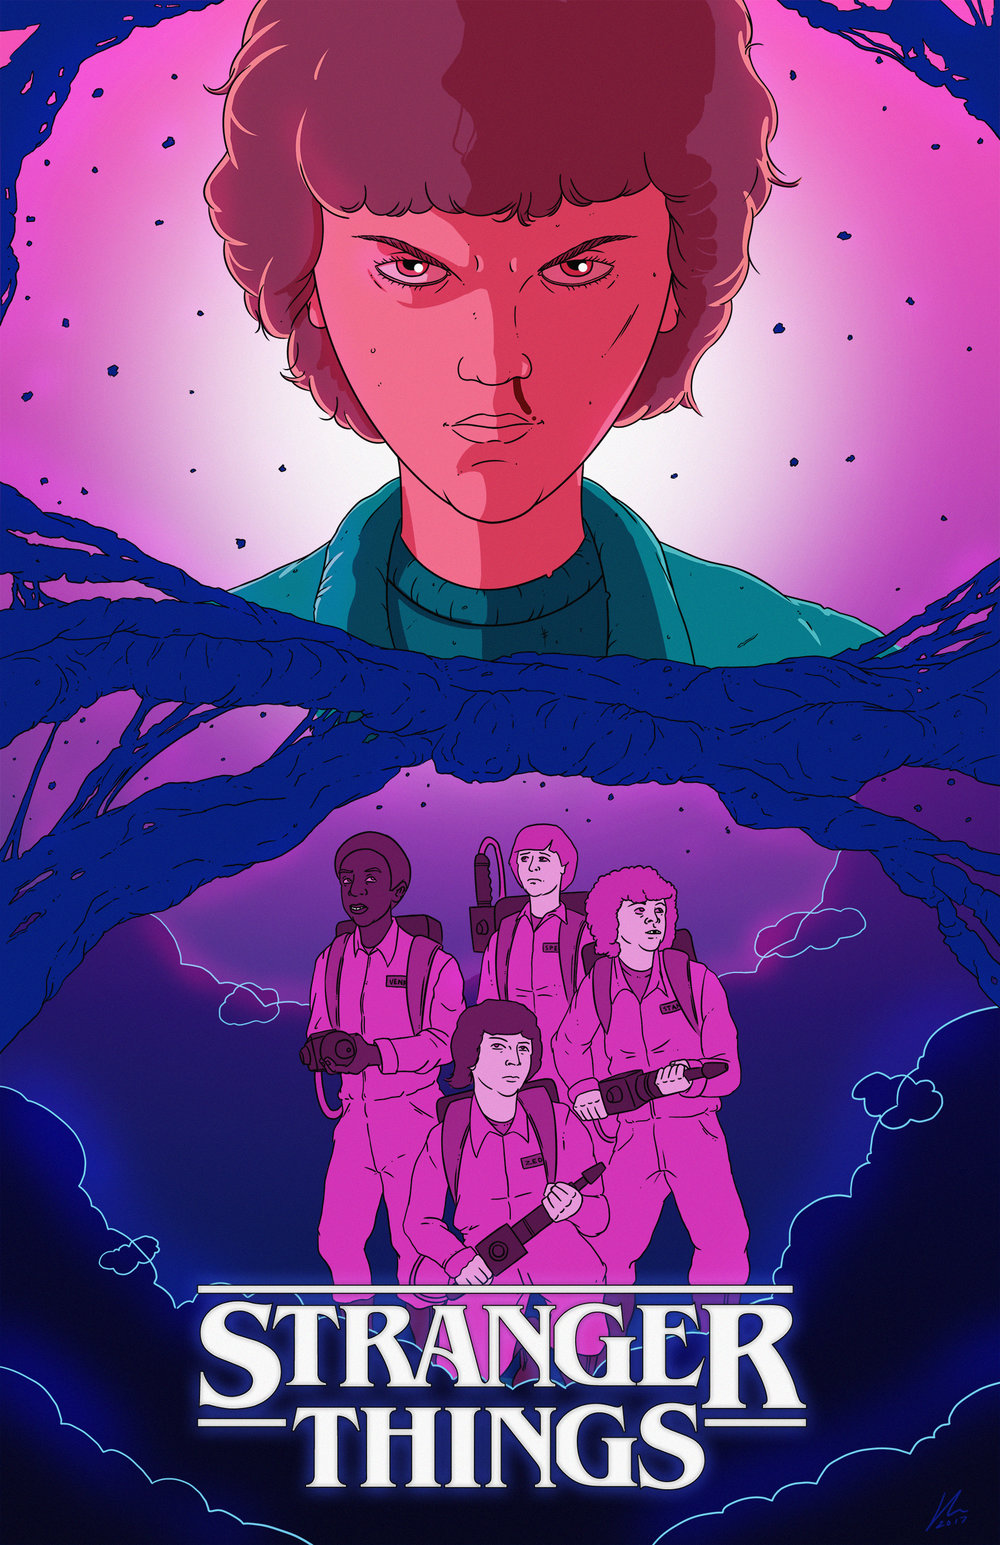 Jon-Caron-Stranger-Things-Season-2-JC-Art.jpg